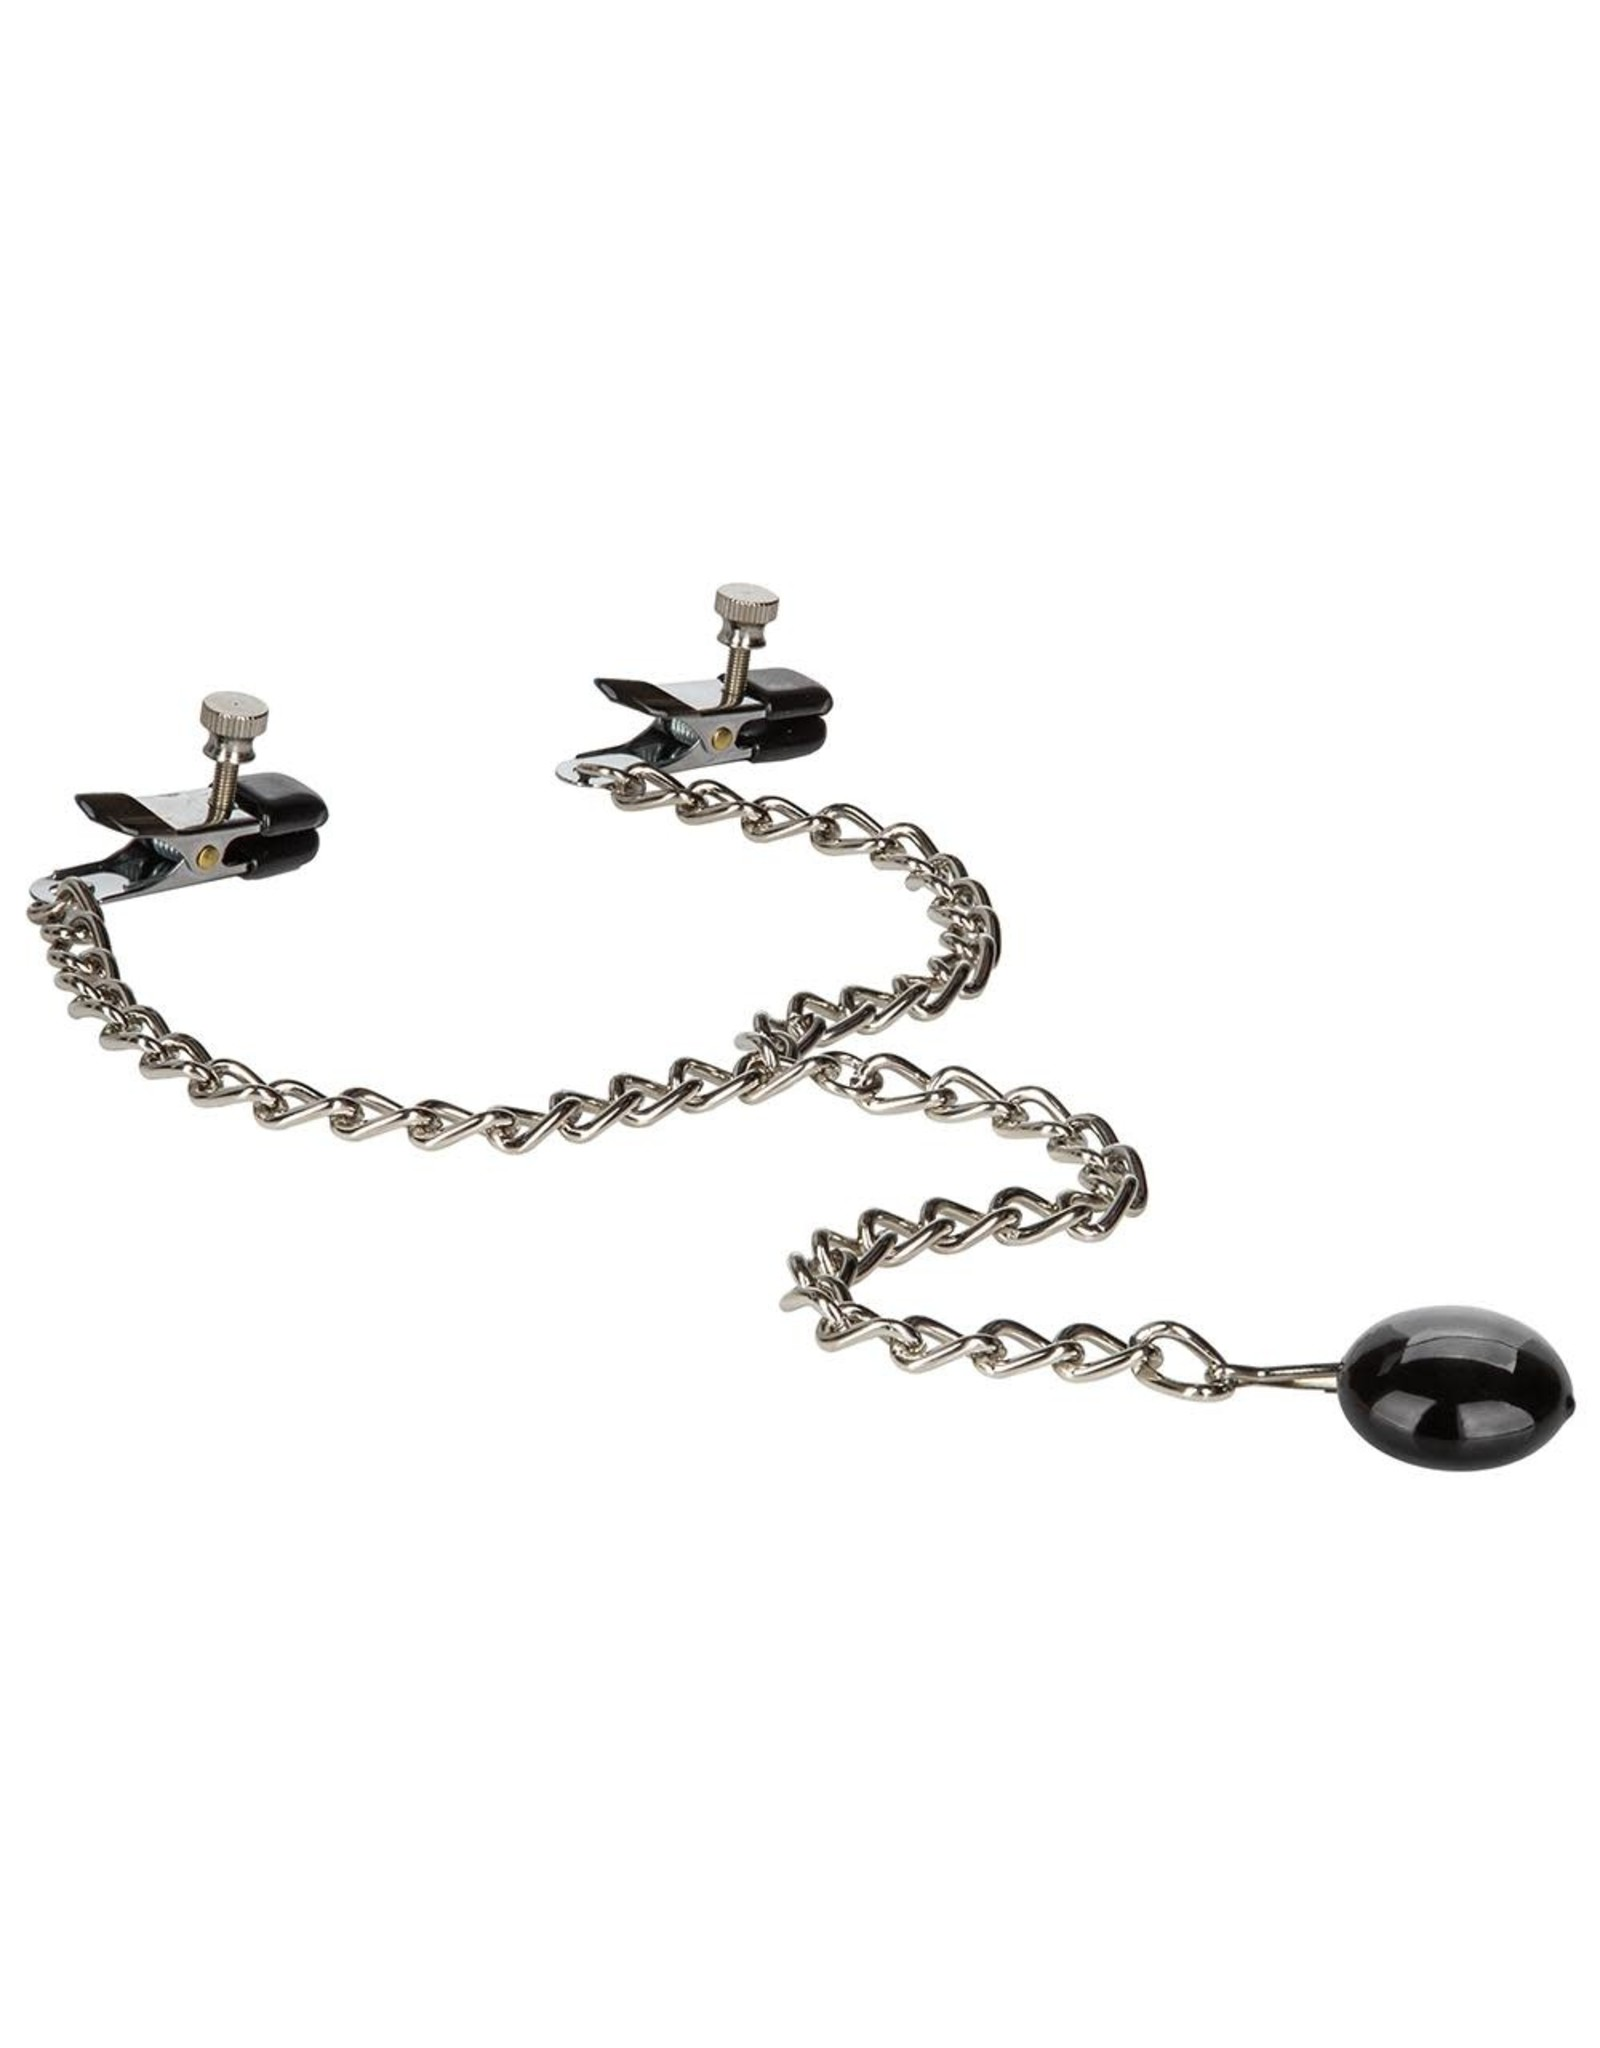 CALEXOTICS - NIPPLE PLAY - WEIGHTED DISC NIPPLE CLAMPS